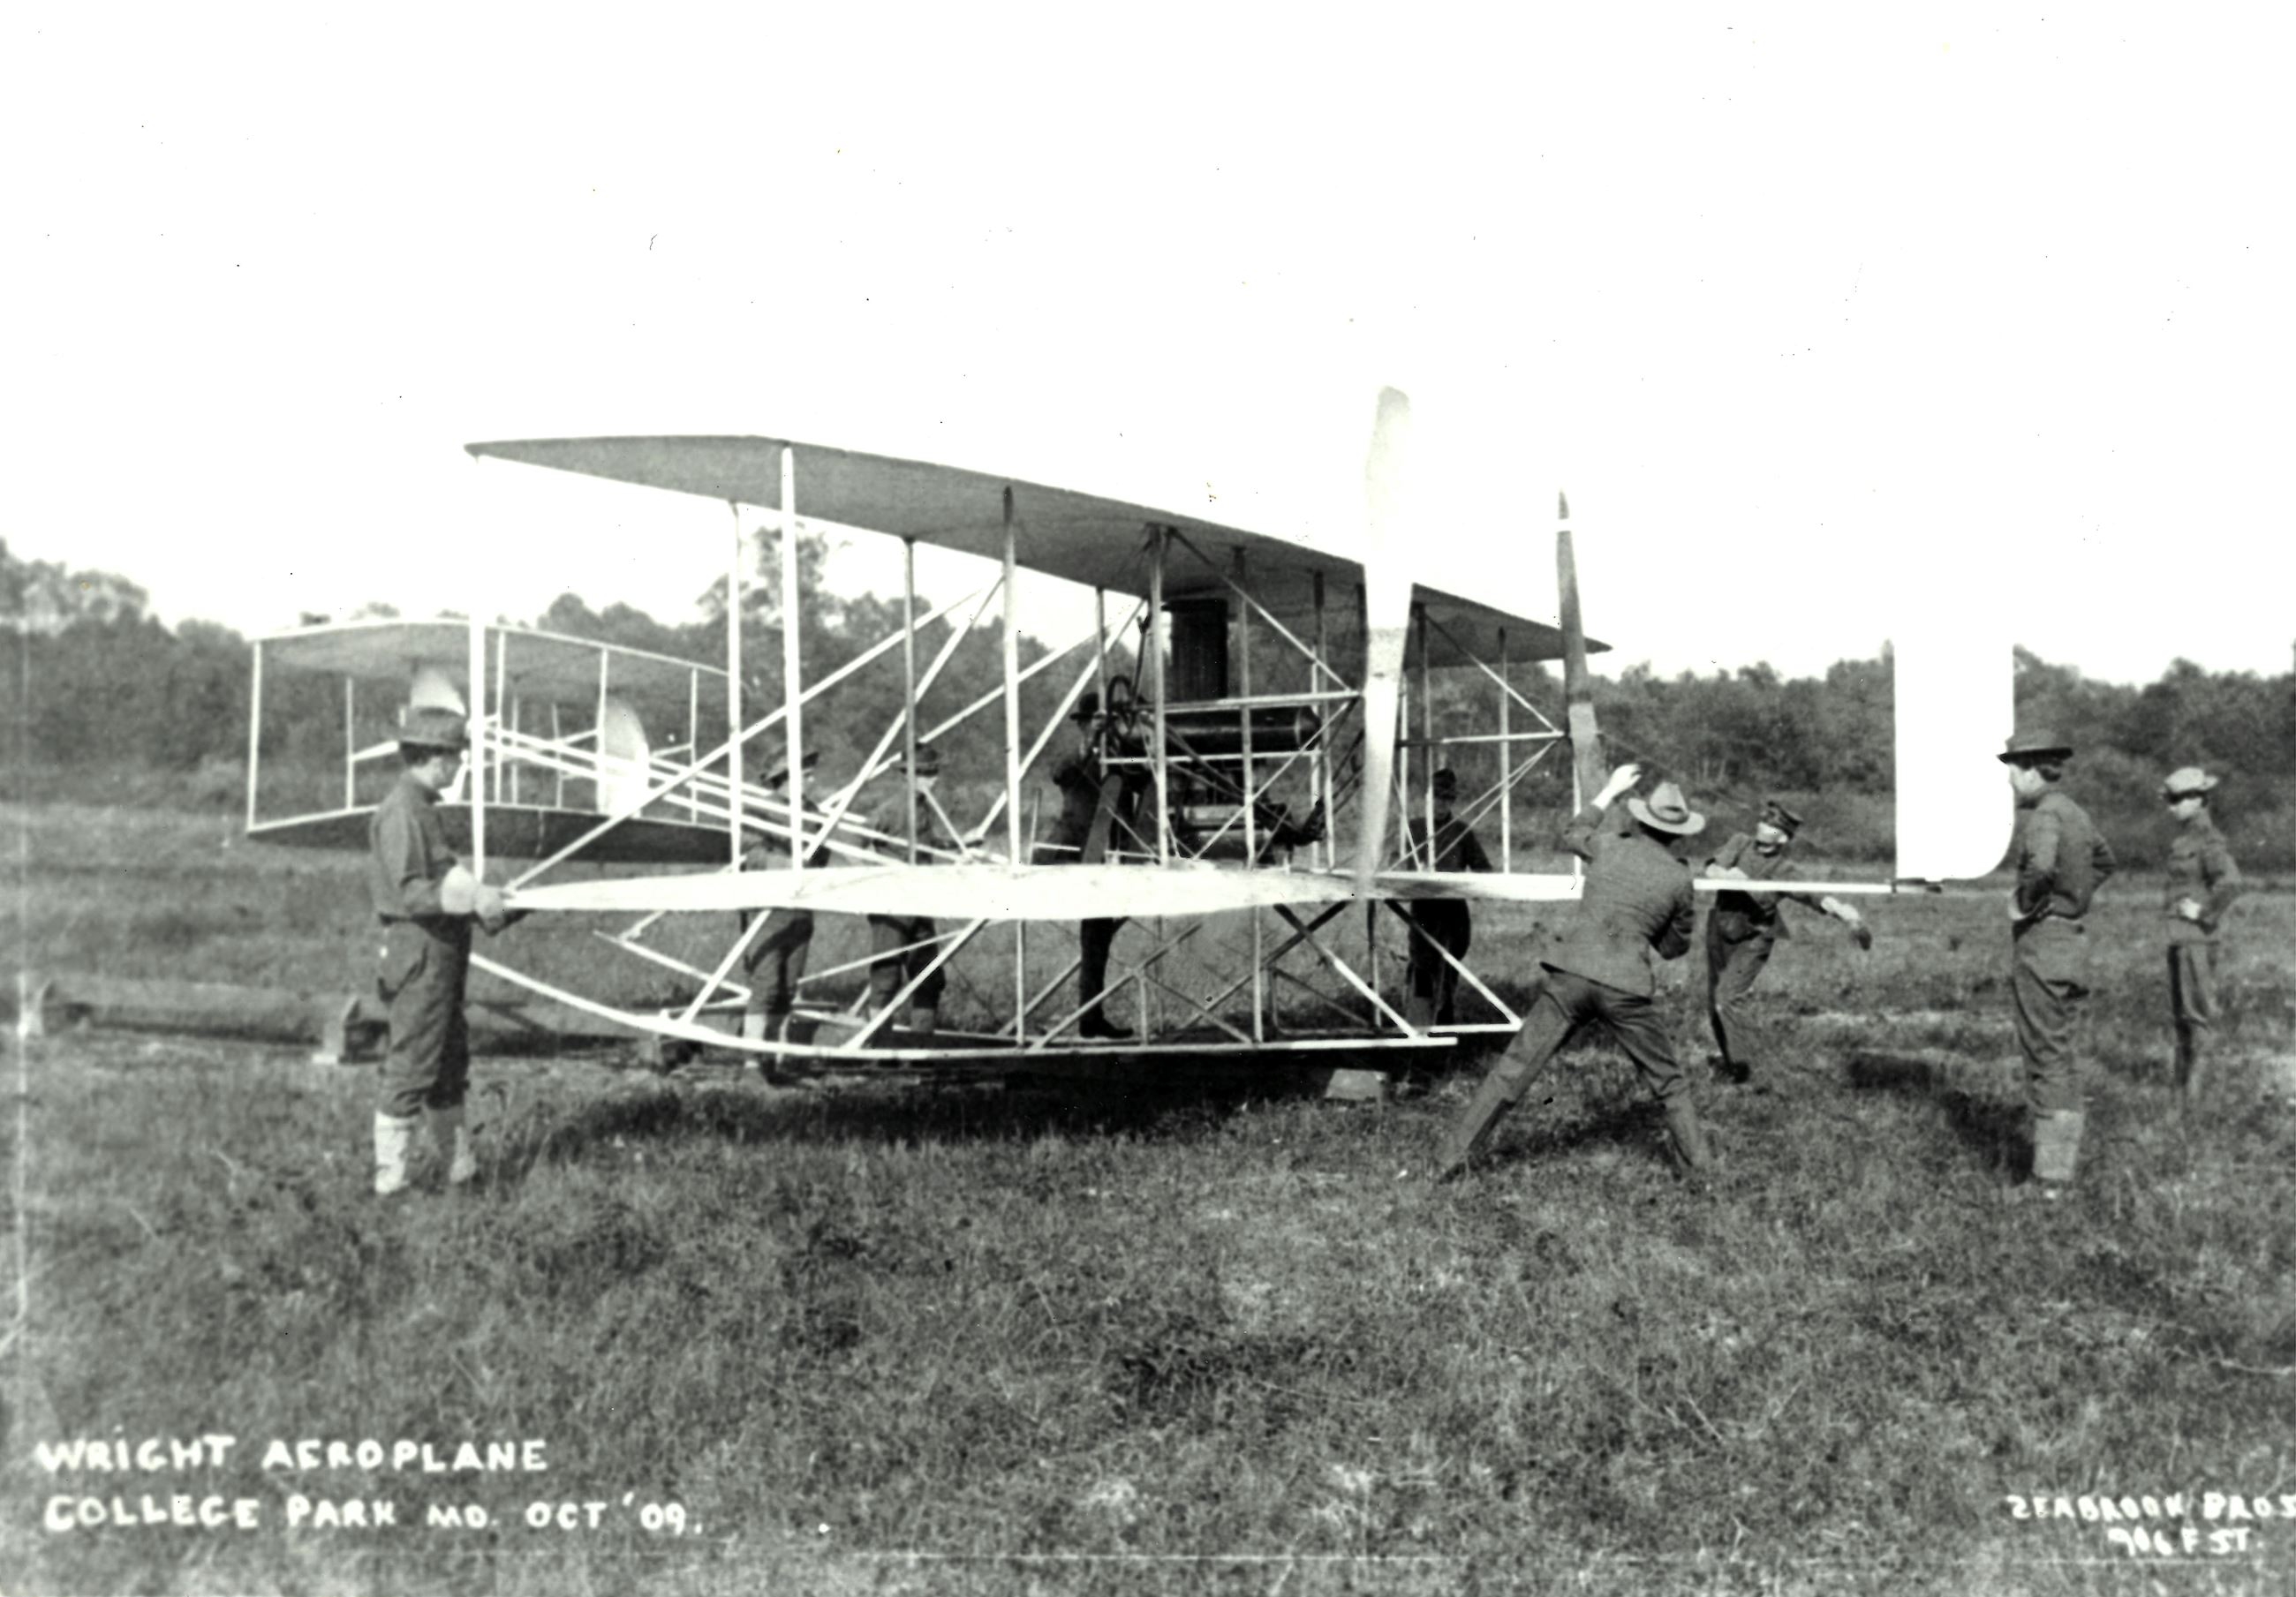 Wright Aeroplane College Park October 1909